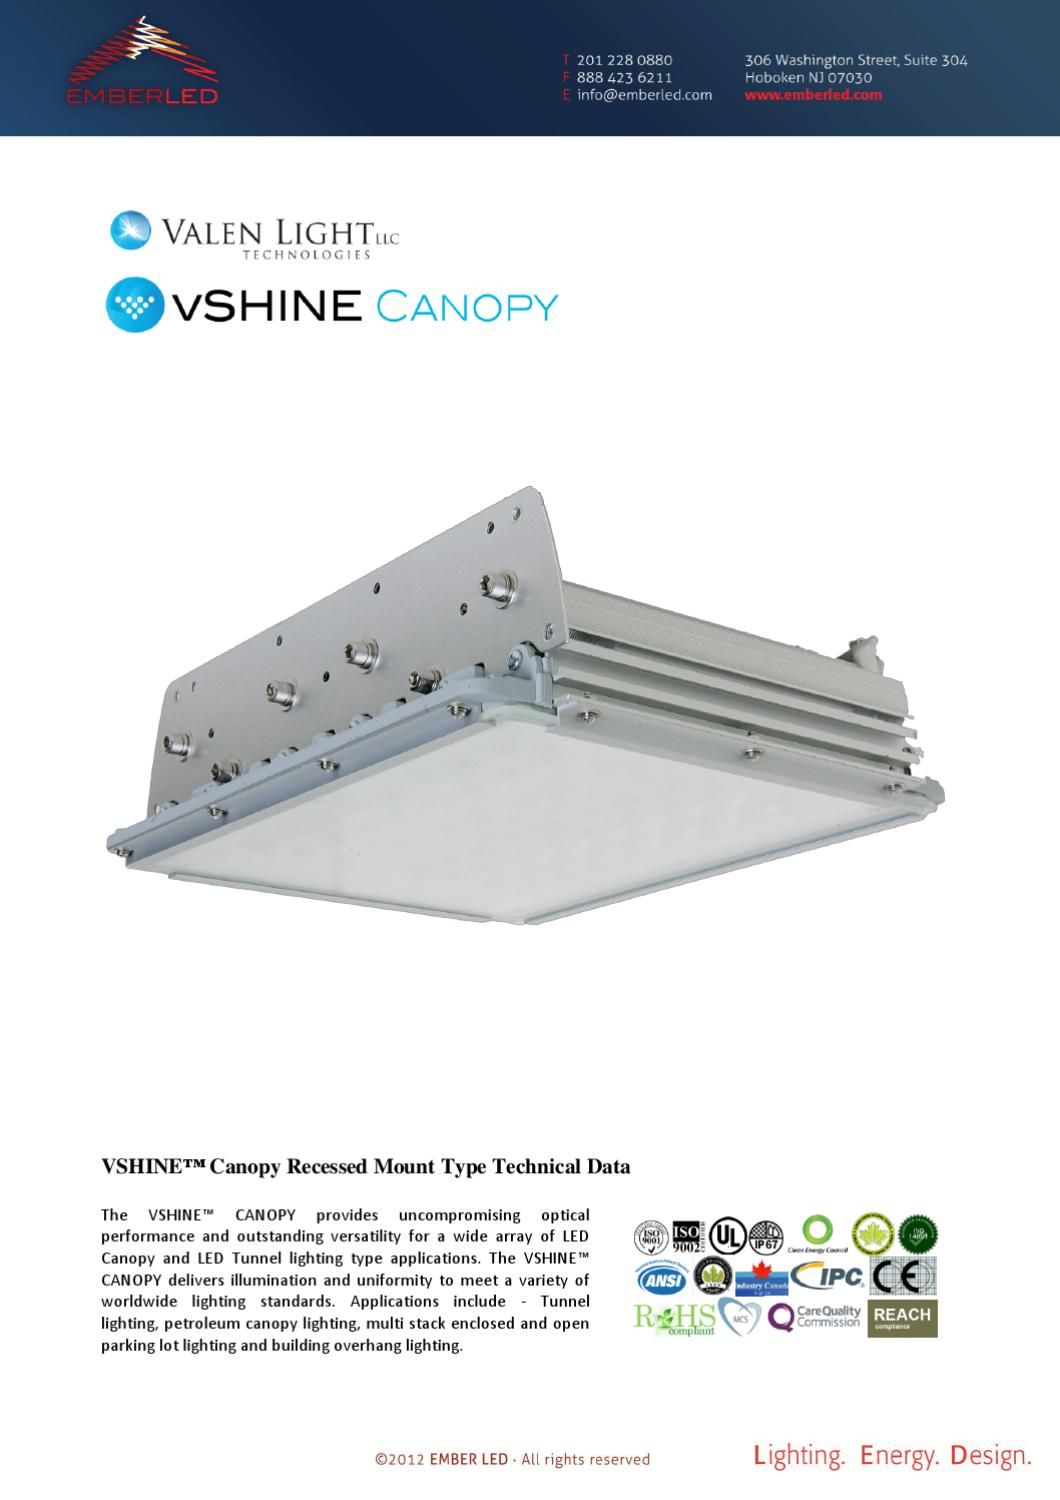 Ember Led Vshine Canopy Light Recessed By Jonathan Robins Tunnel Lighting Diagram Issuu